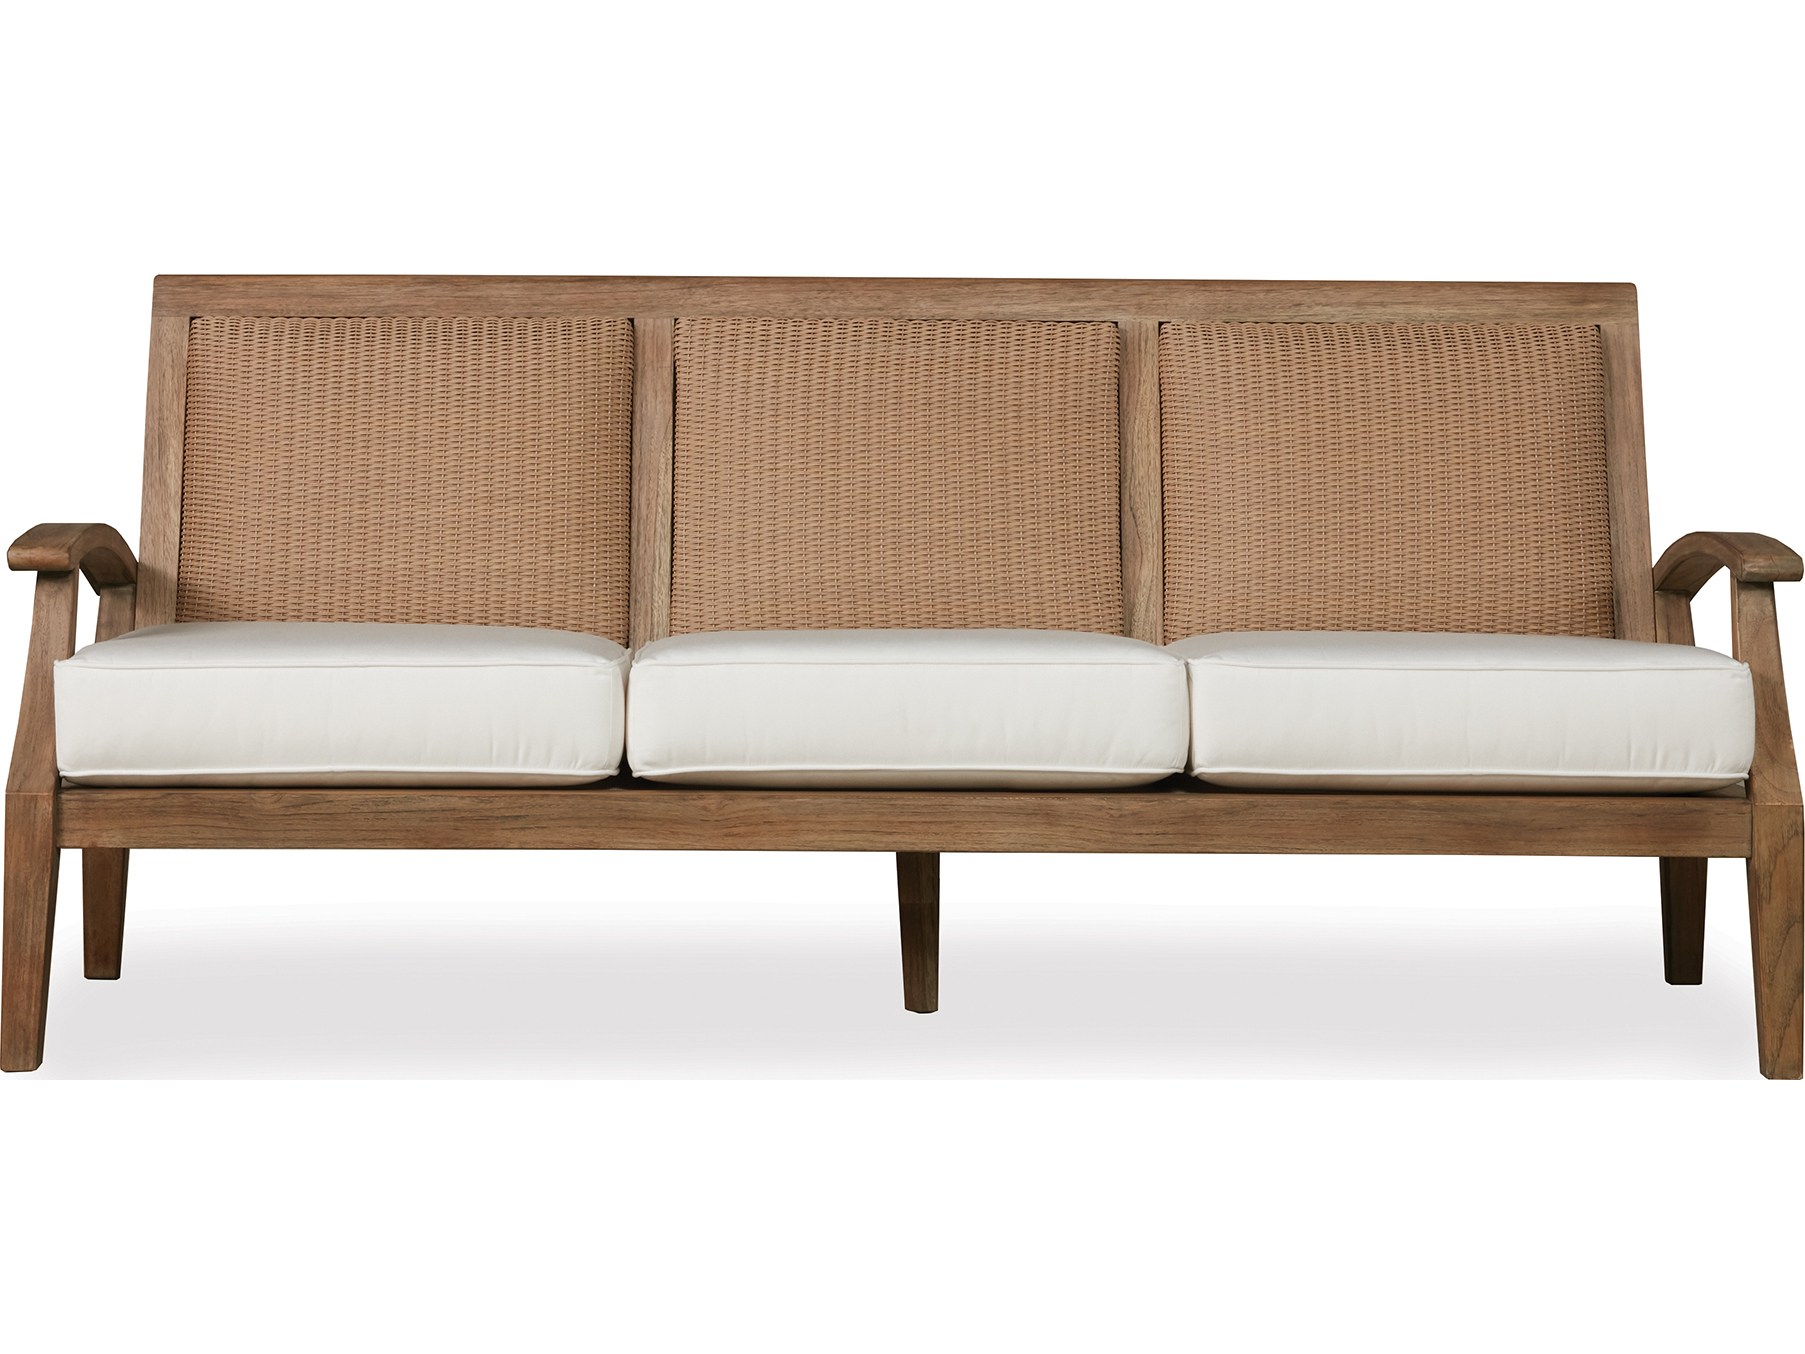 lloyd s of chatham sofa bed sectional couch flanders wildwood teak 135055